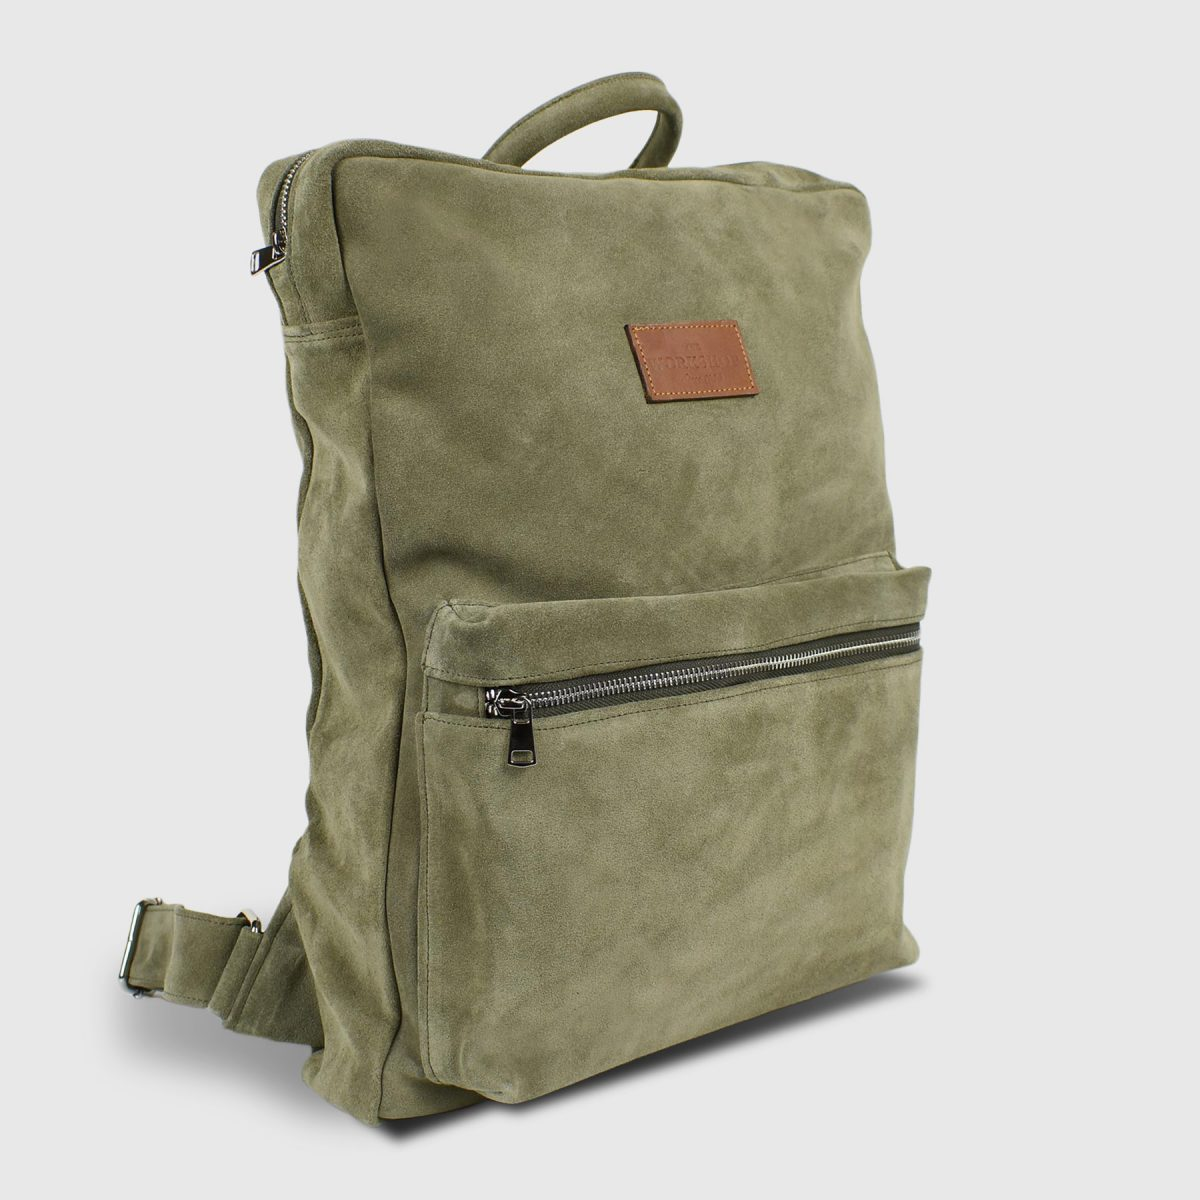 Books Sage Suede Leather Backpack - Handmade Backpack by The Workshop